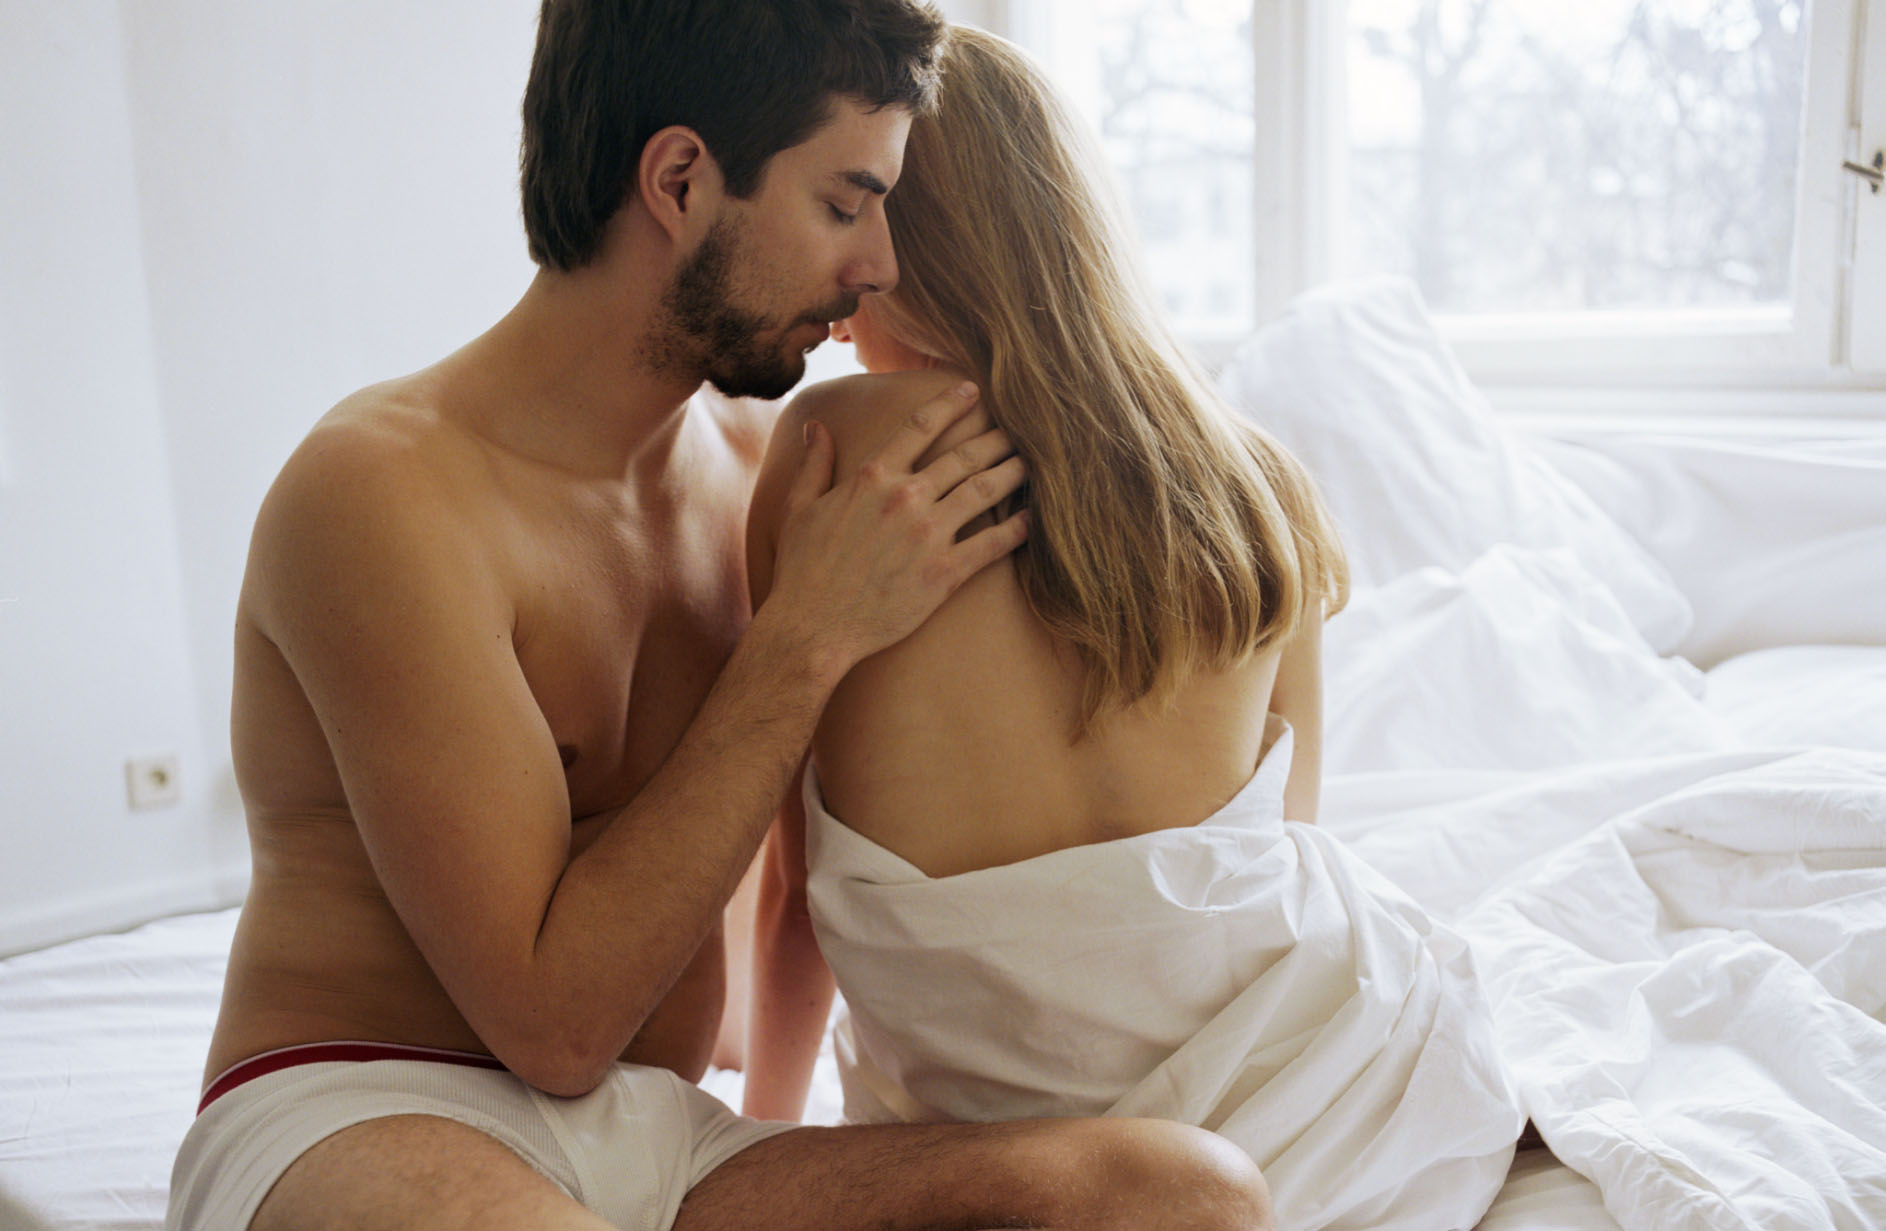 Young couple sitting on bed, man touching woman's shoulder